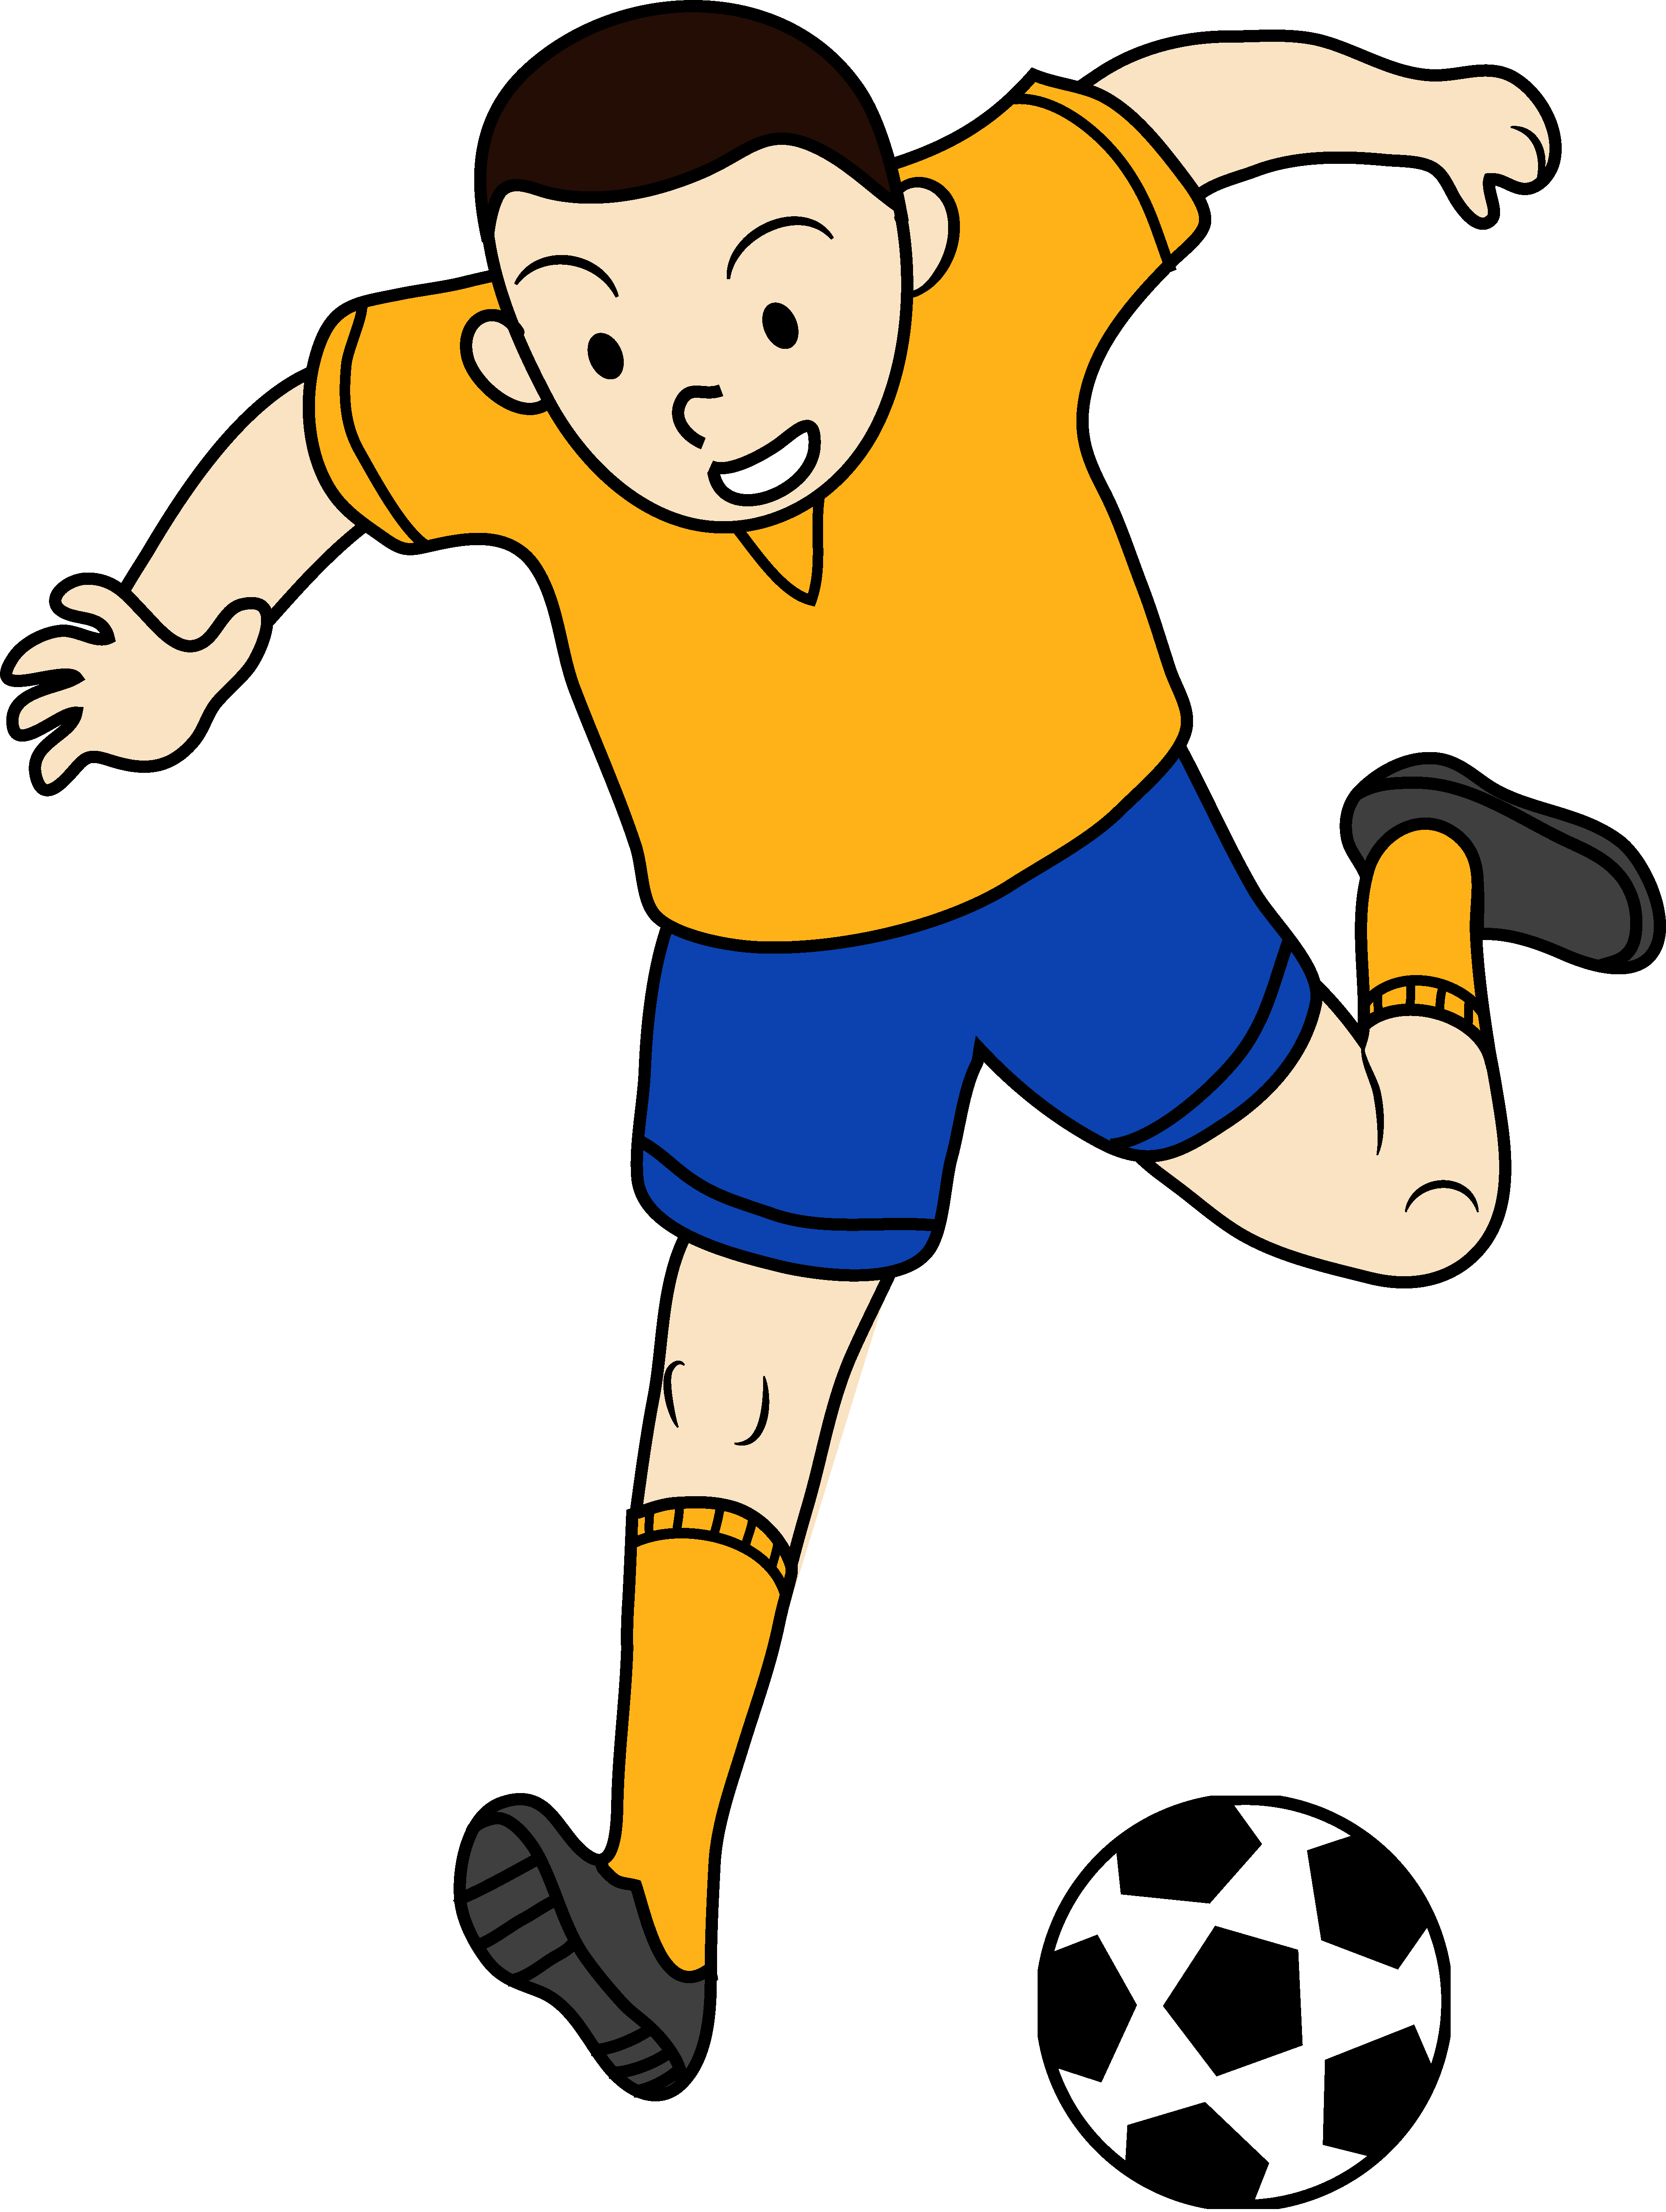 clipart football man